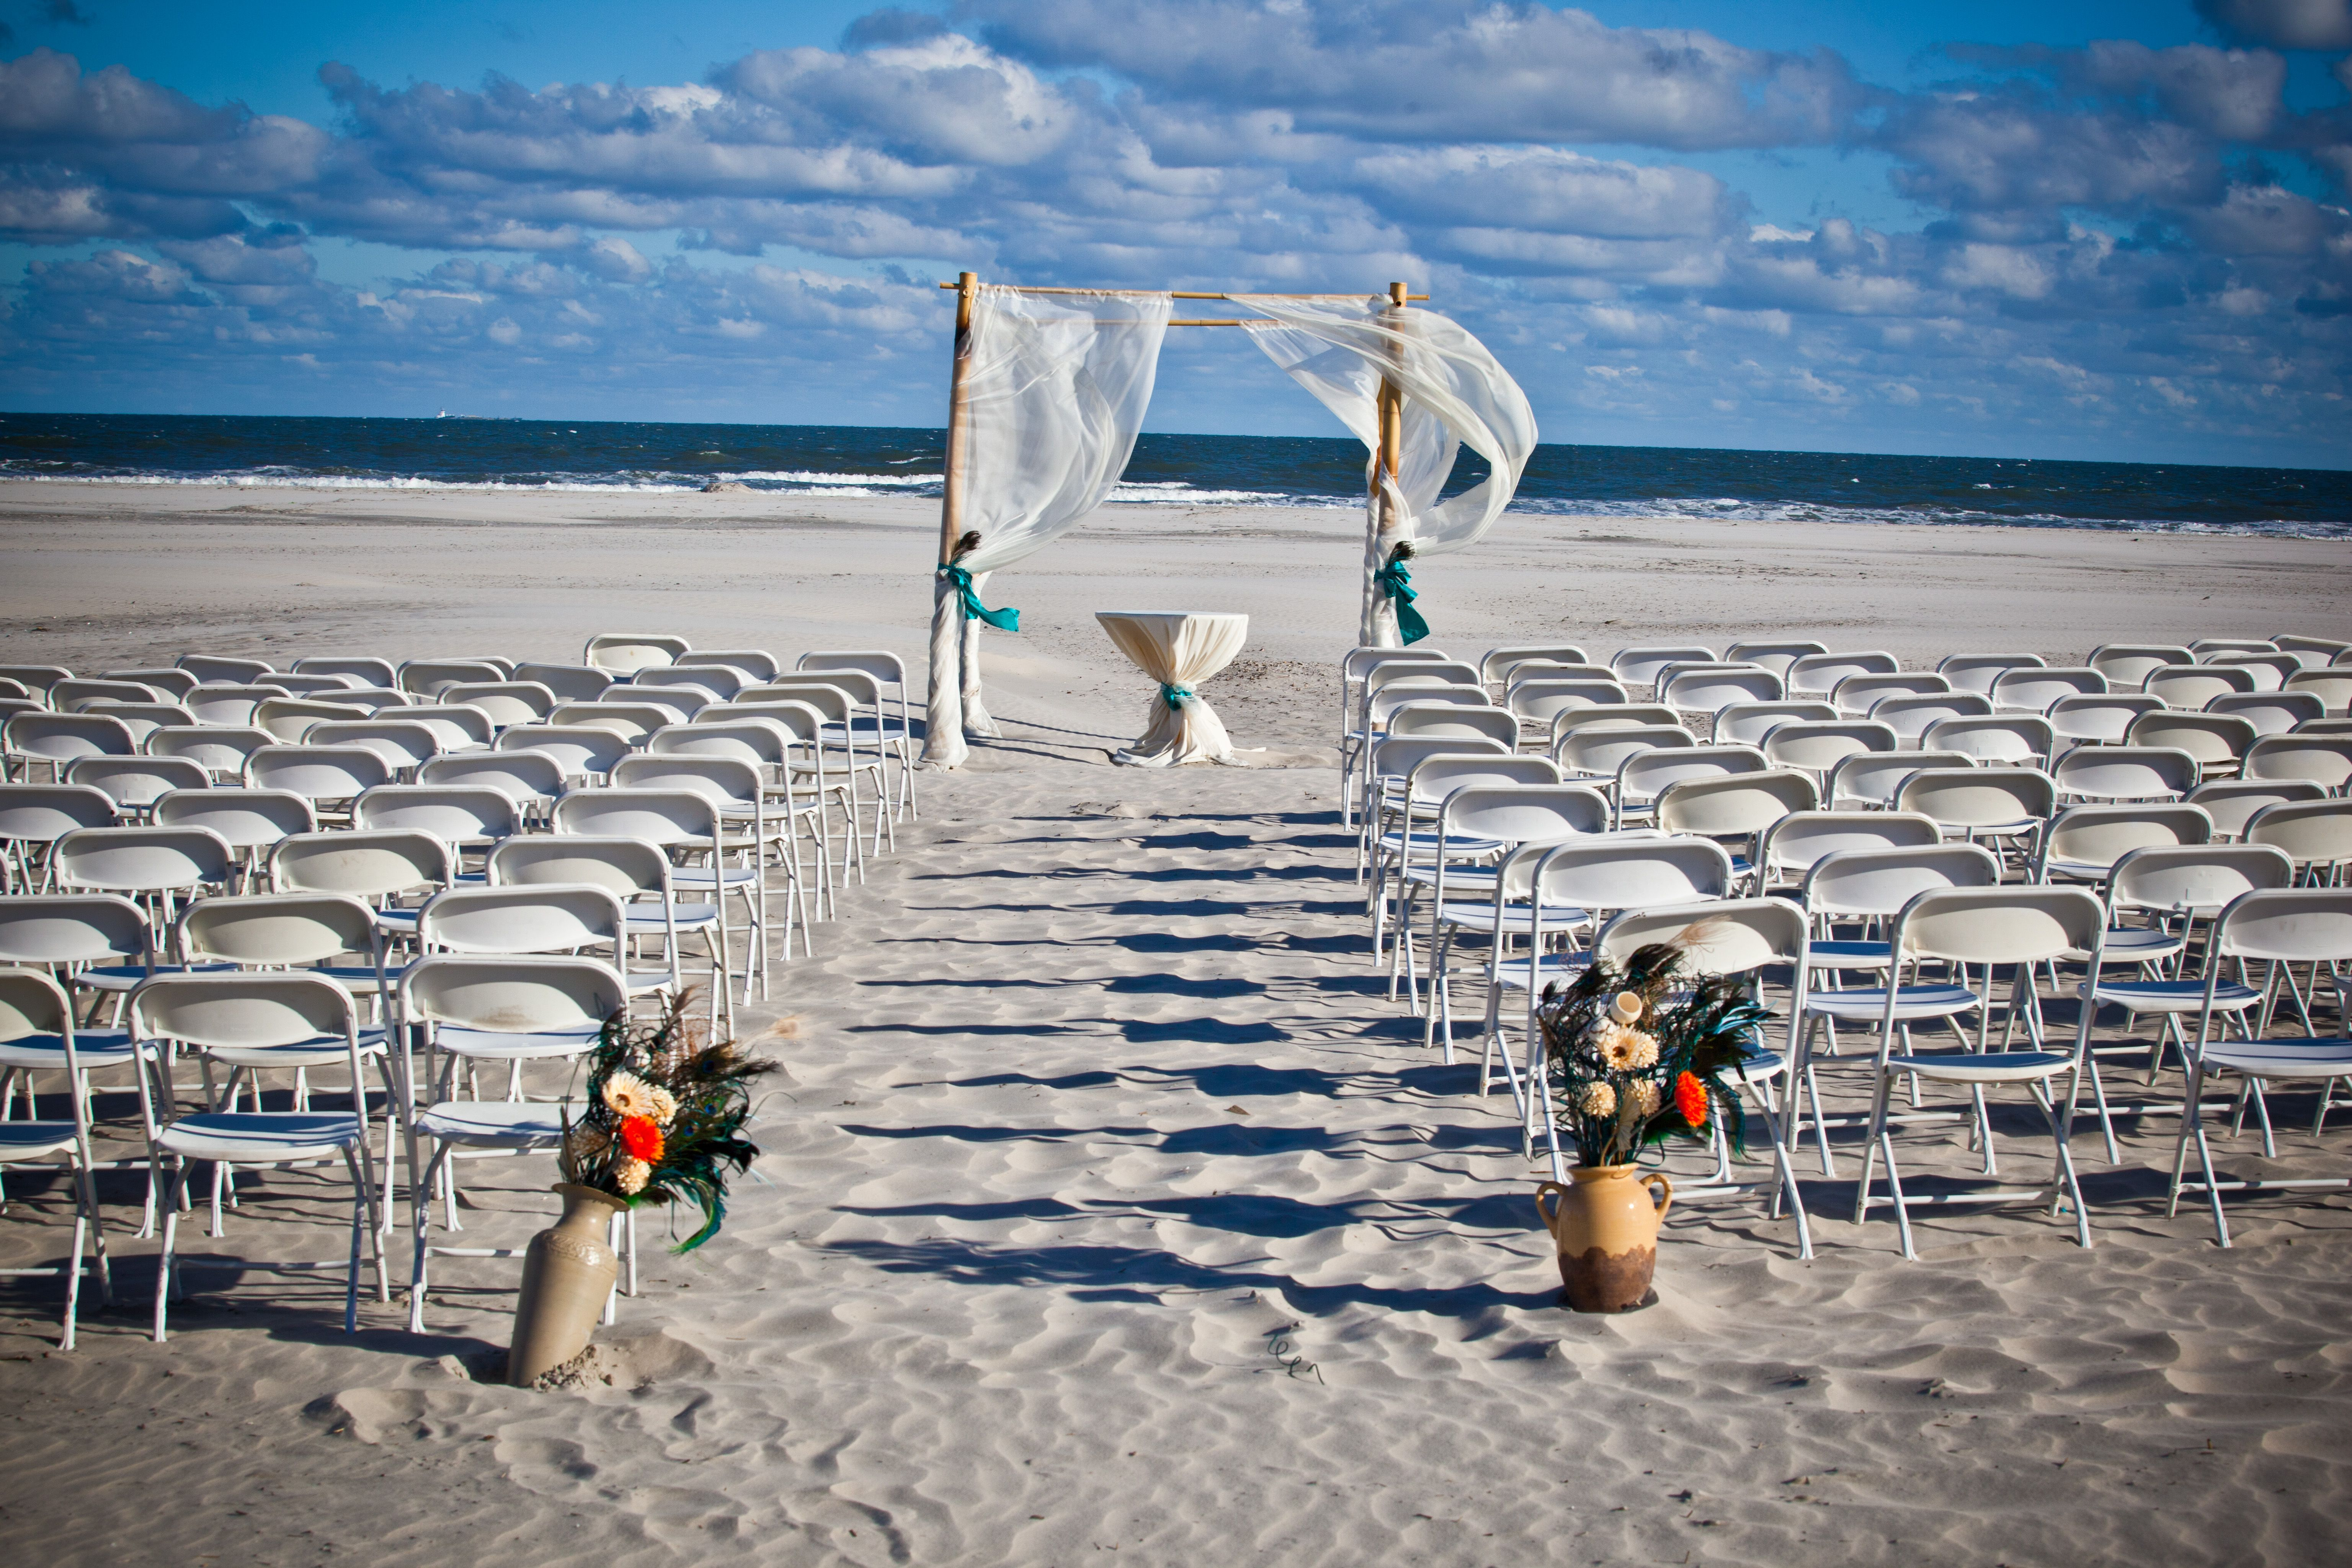 Gorgeous Beach Ceremony E Wedding At Hotel Icona Diamond New Jersey Between Cape May Wildwood Crest Nj Hotelicona Diamondbeach